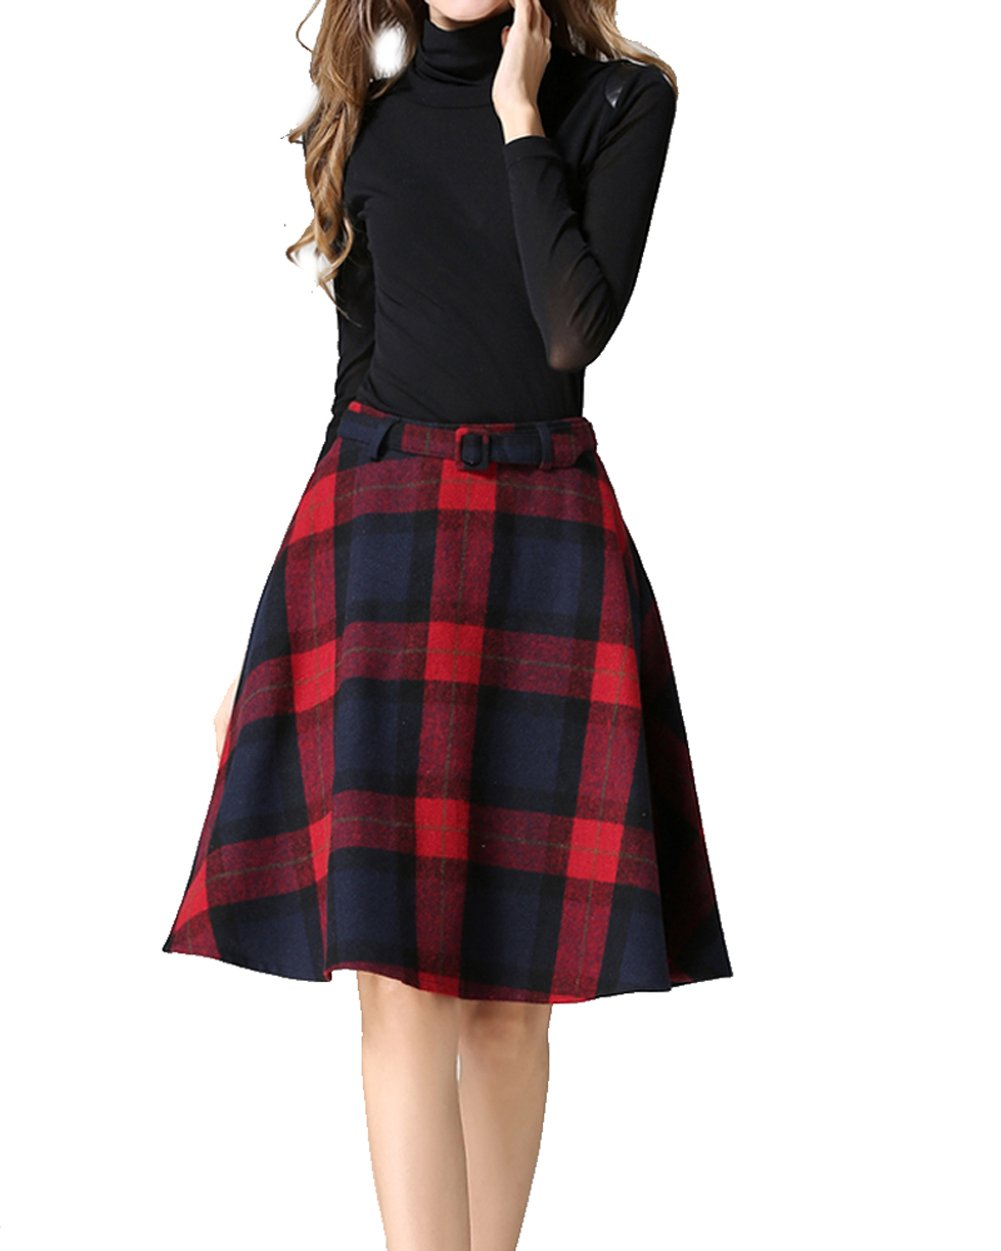 Womens Vintage Plaid Wool High Waist A-lineKnee Length Sakter Skirt with Pockets(S/US 2, Red) by Armear (Image #3)